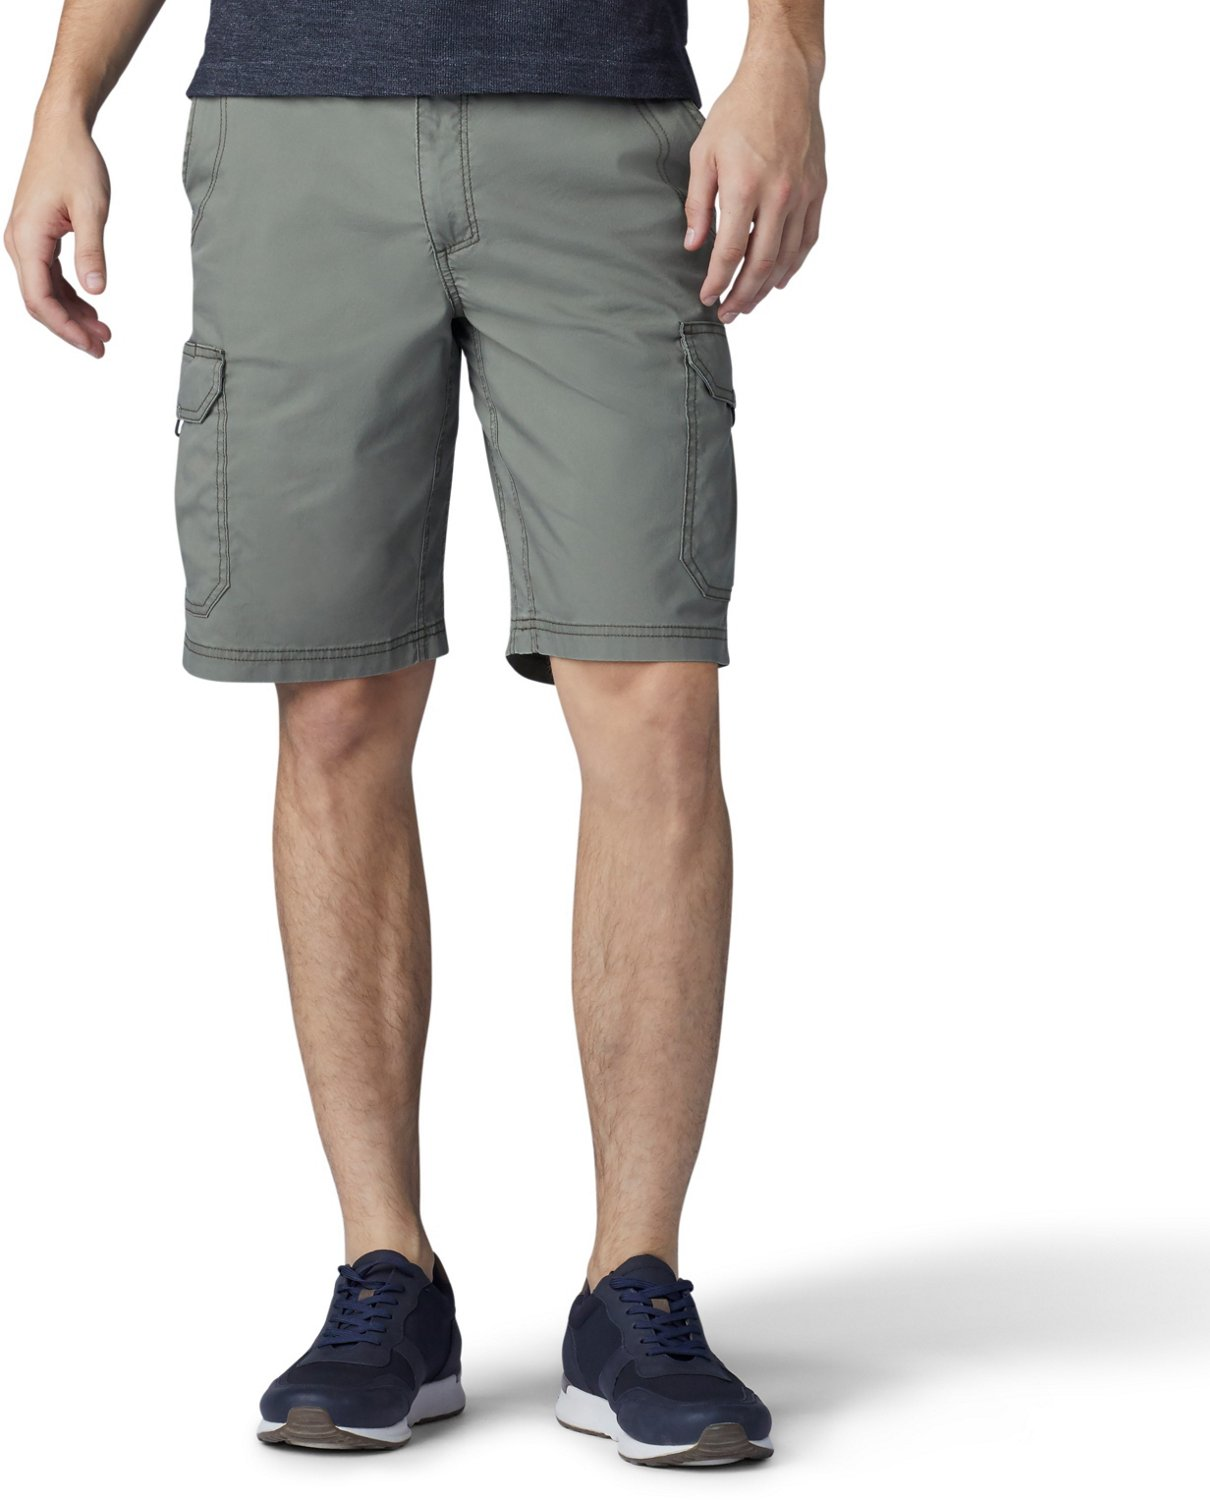 b76f29994 Display product reviews for Lee Men's Crossroad Cargo Shorts